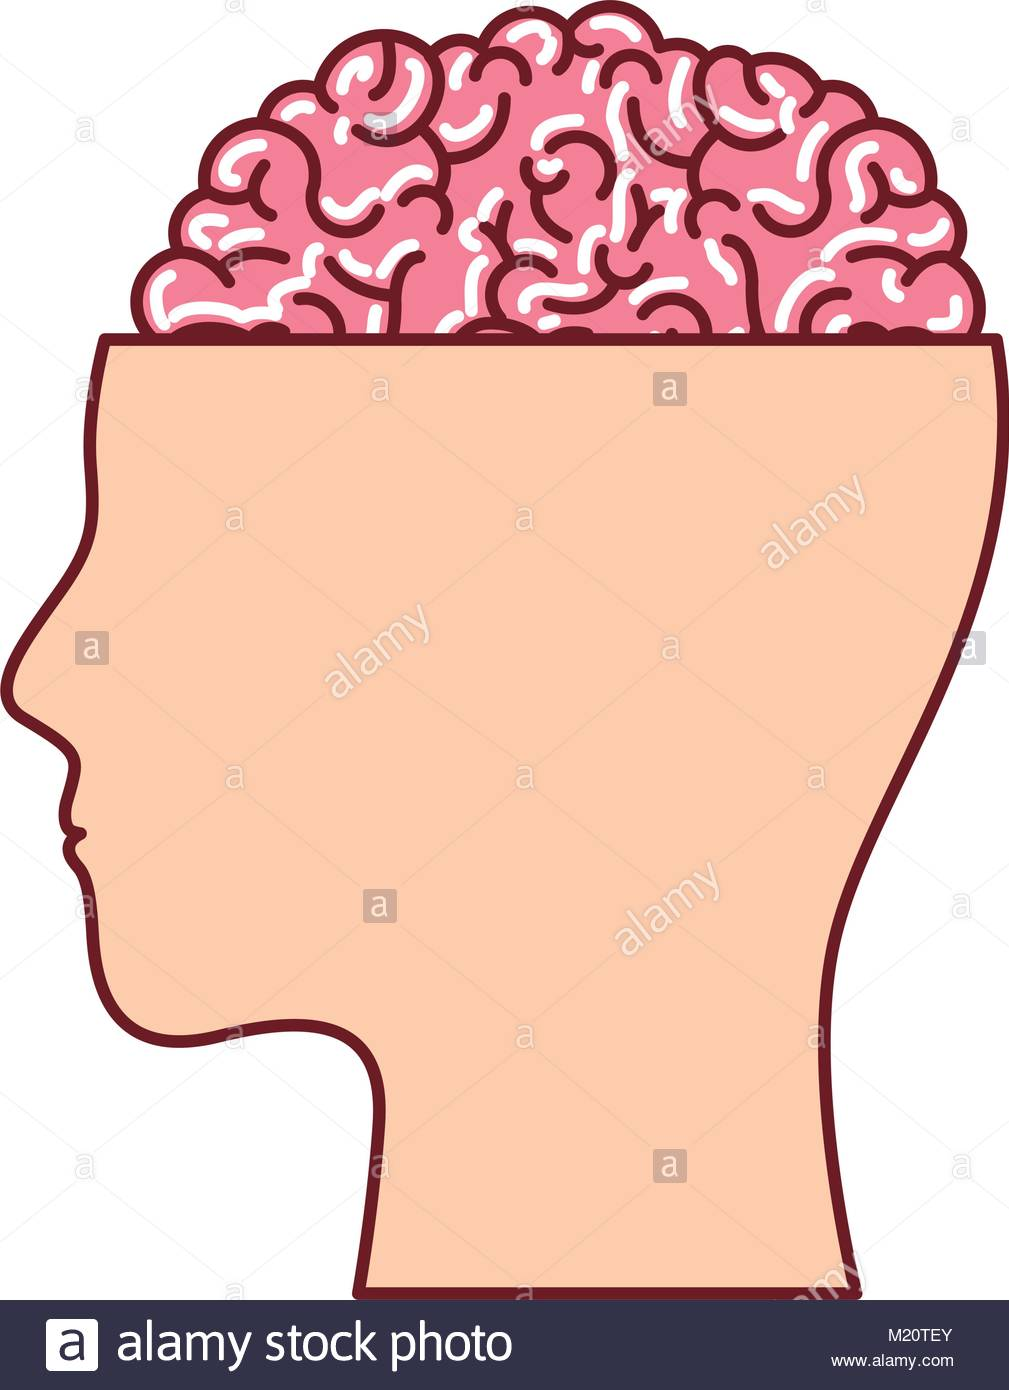 1009x1390 Human Face Silhouette With Brain Exposed In Colorful Silhouette